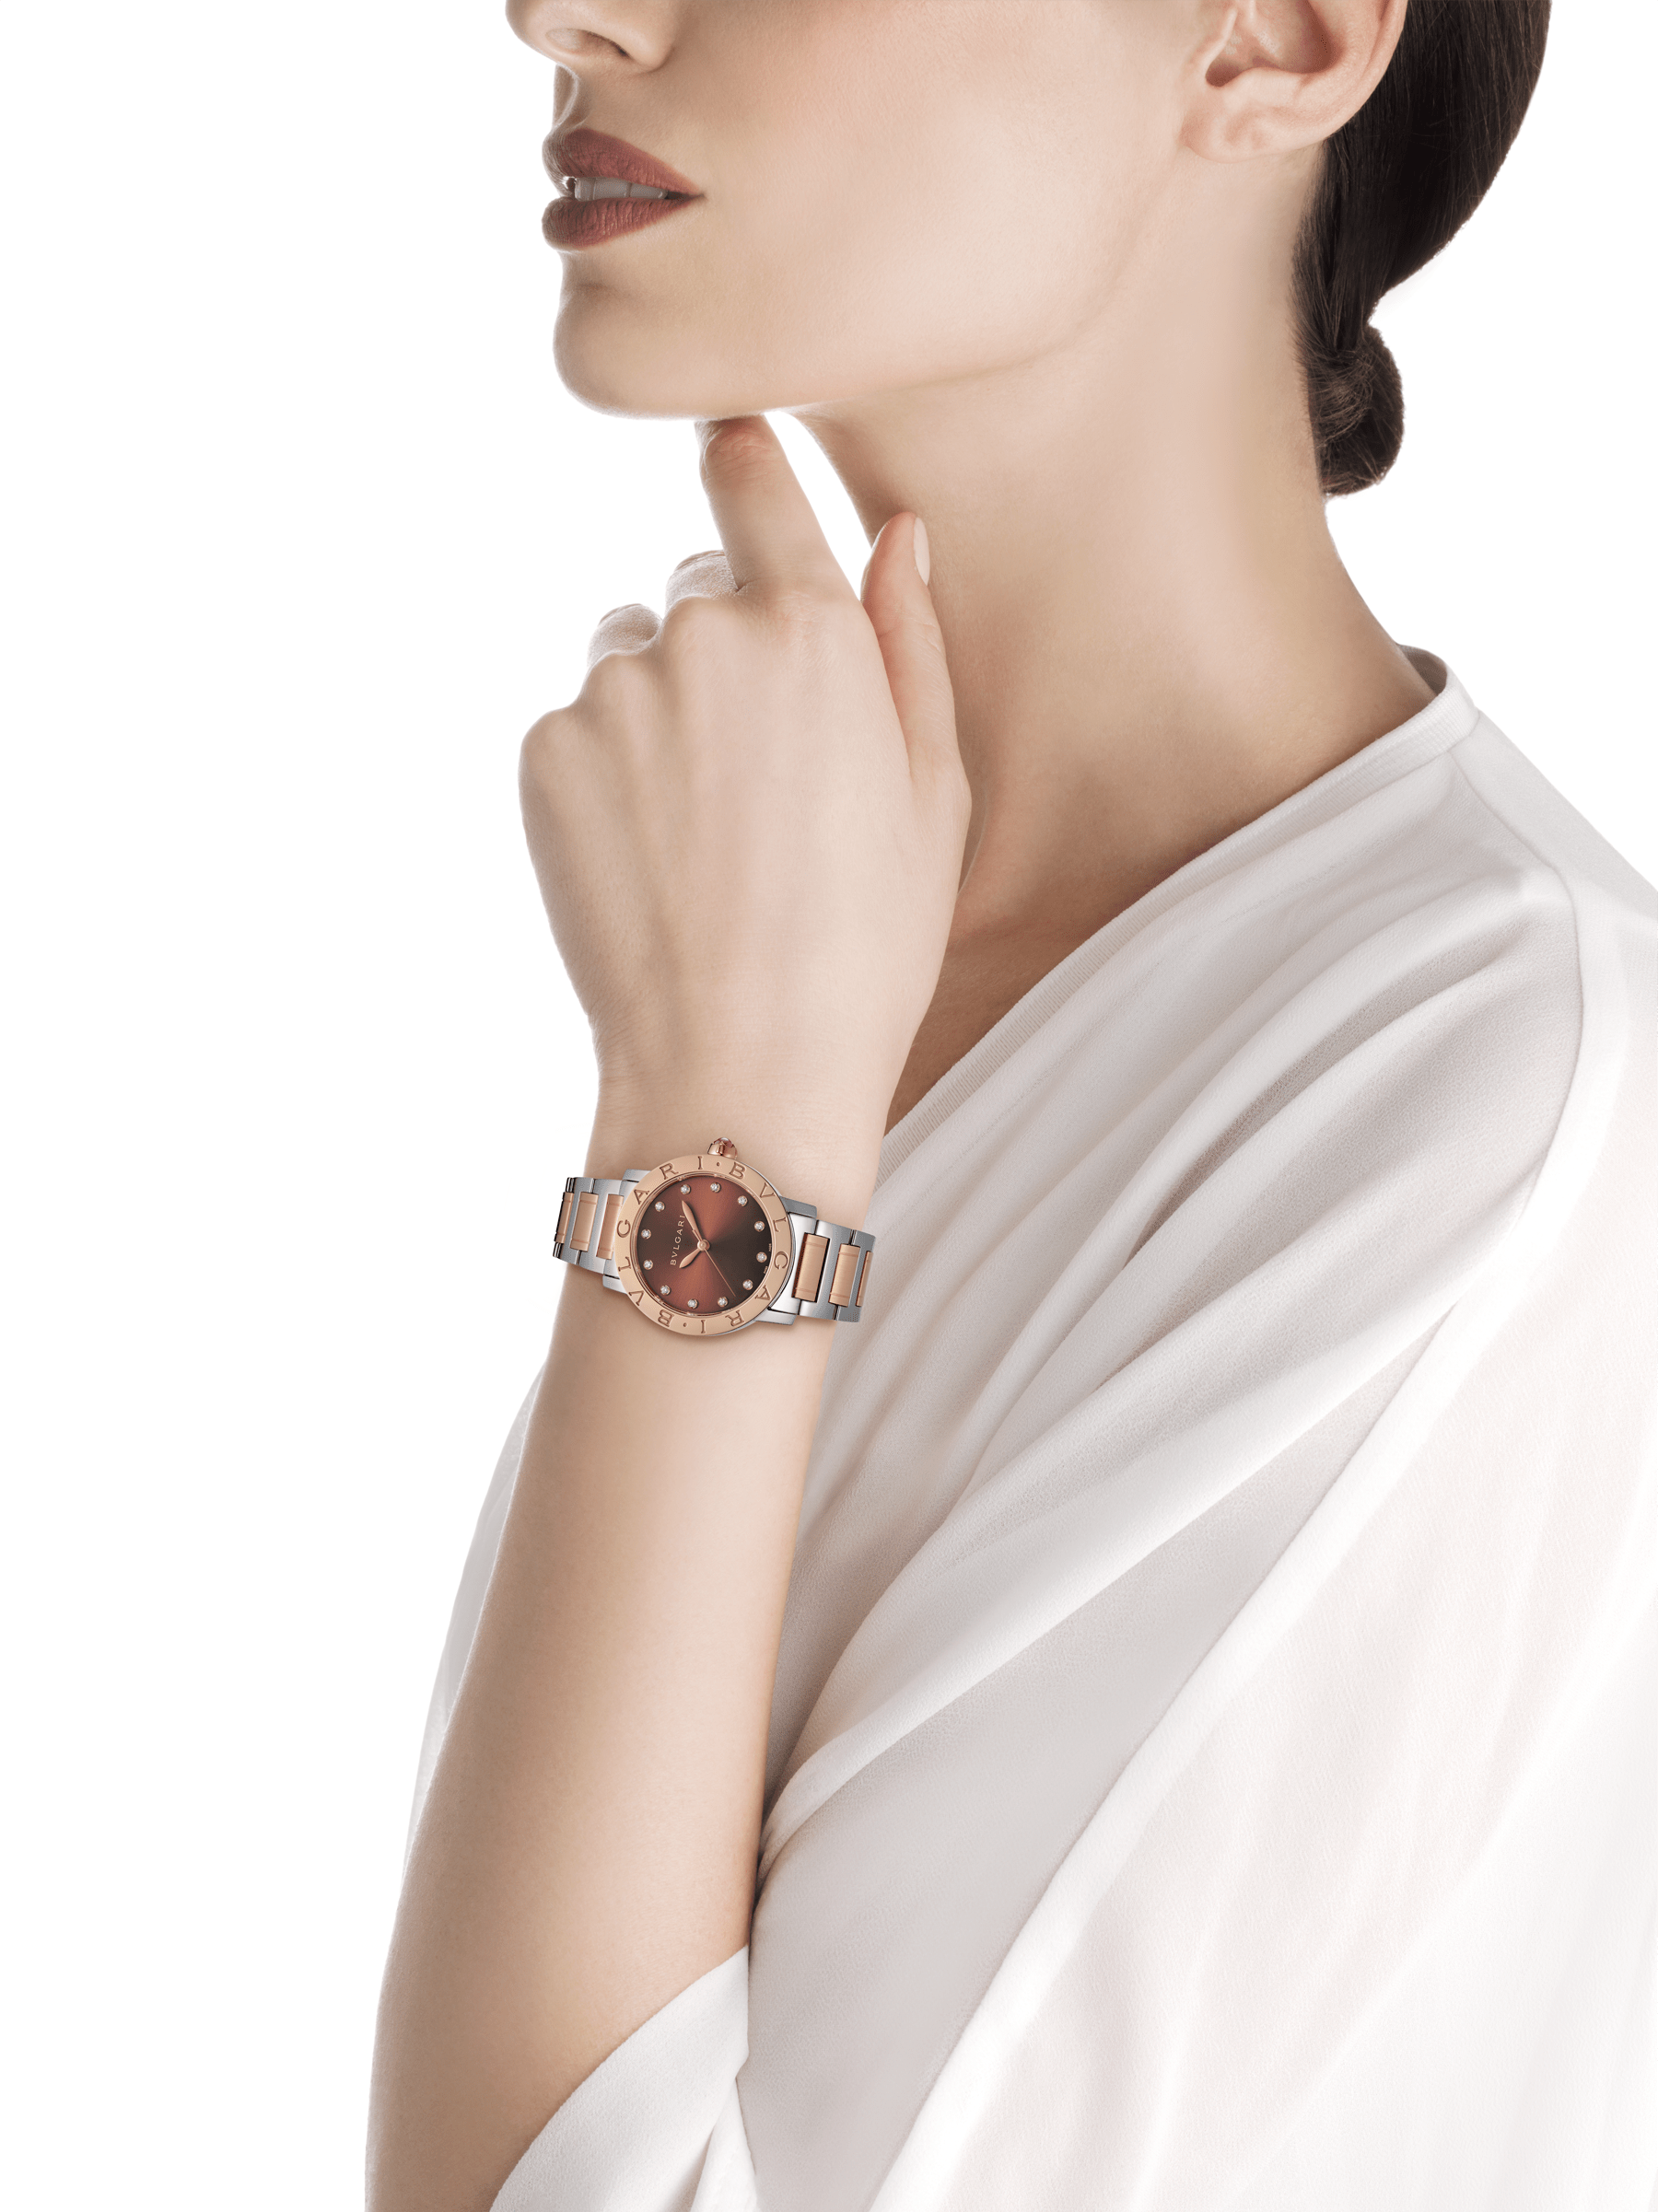 BVLGARI BVLGARI watch in stainless steel and 18 kt rose gold case and bracelet, with brown soleil lacquered dial and diamond indexes. Medium model 102157 image 4